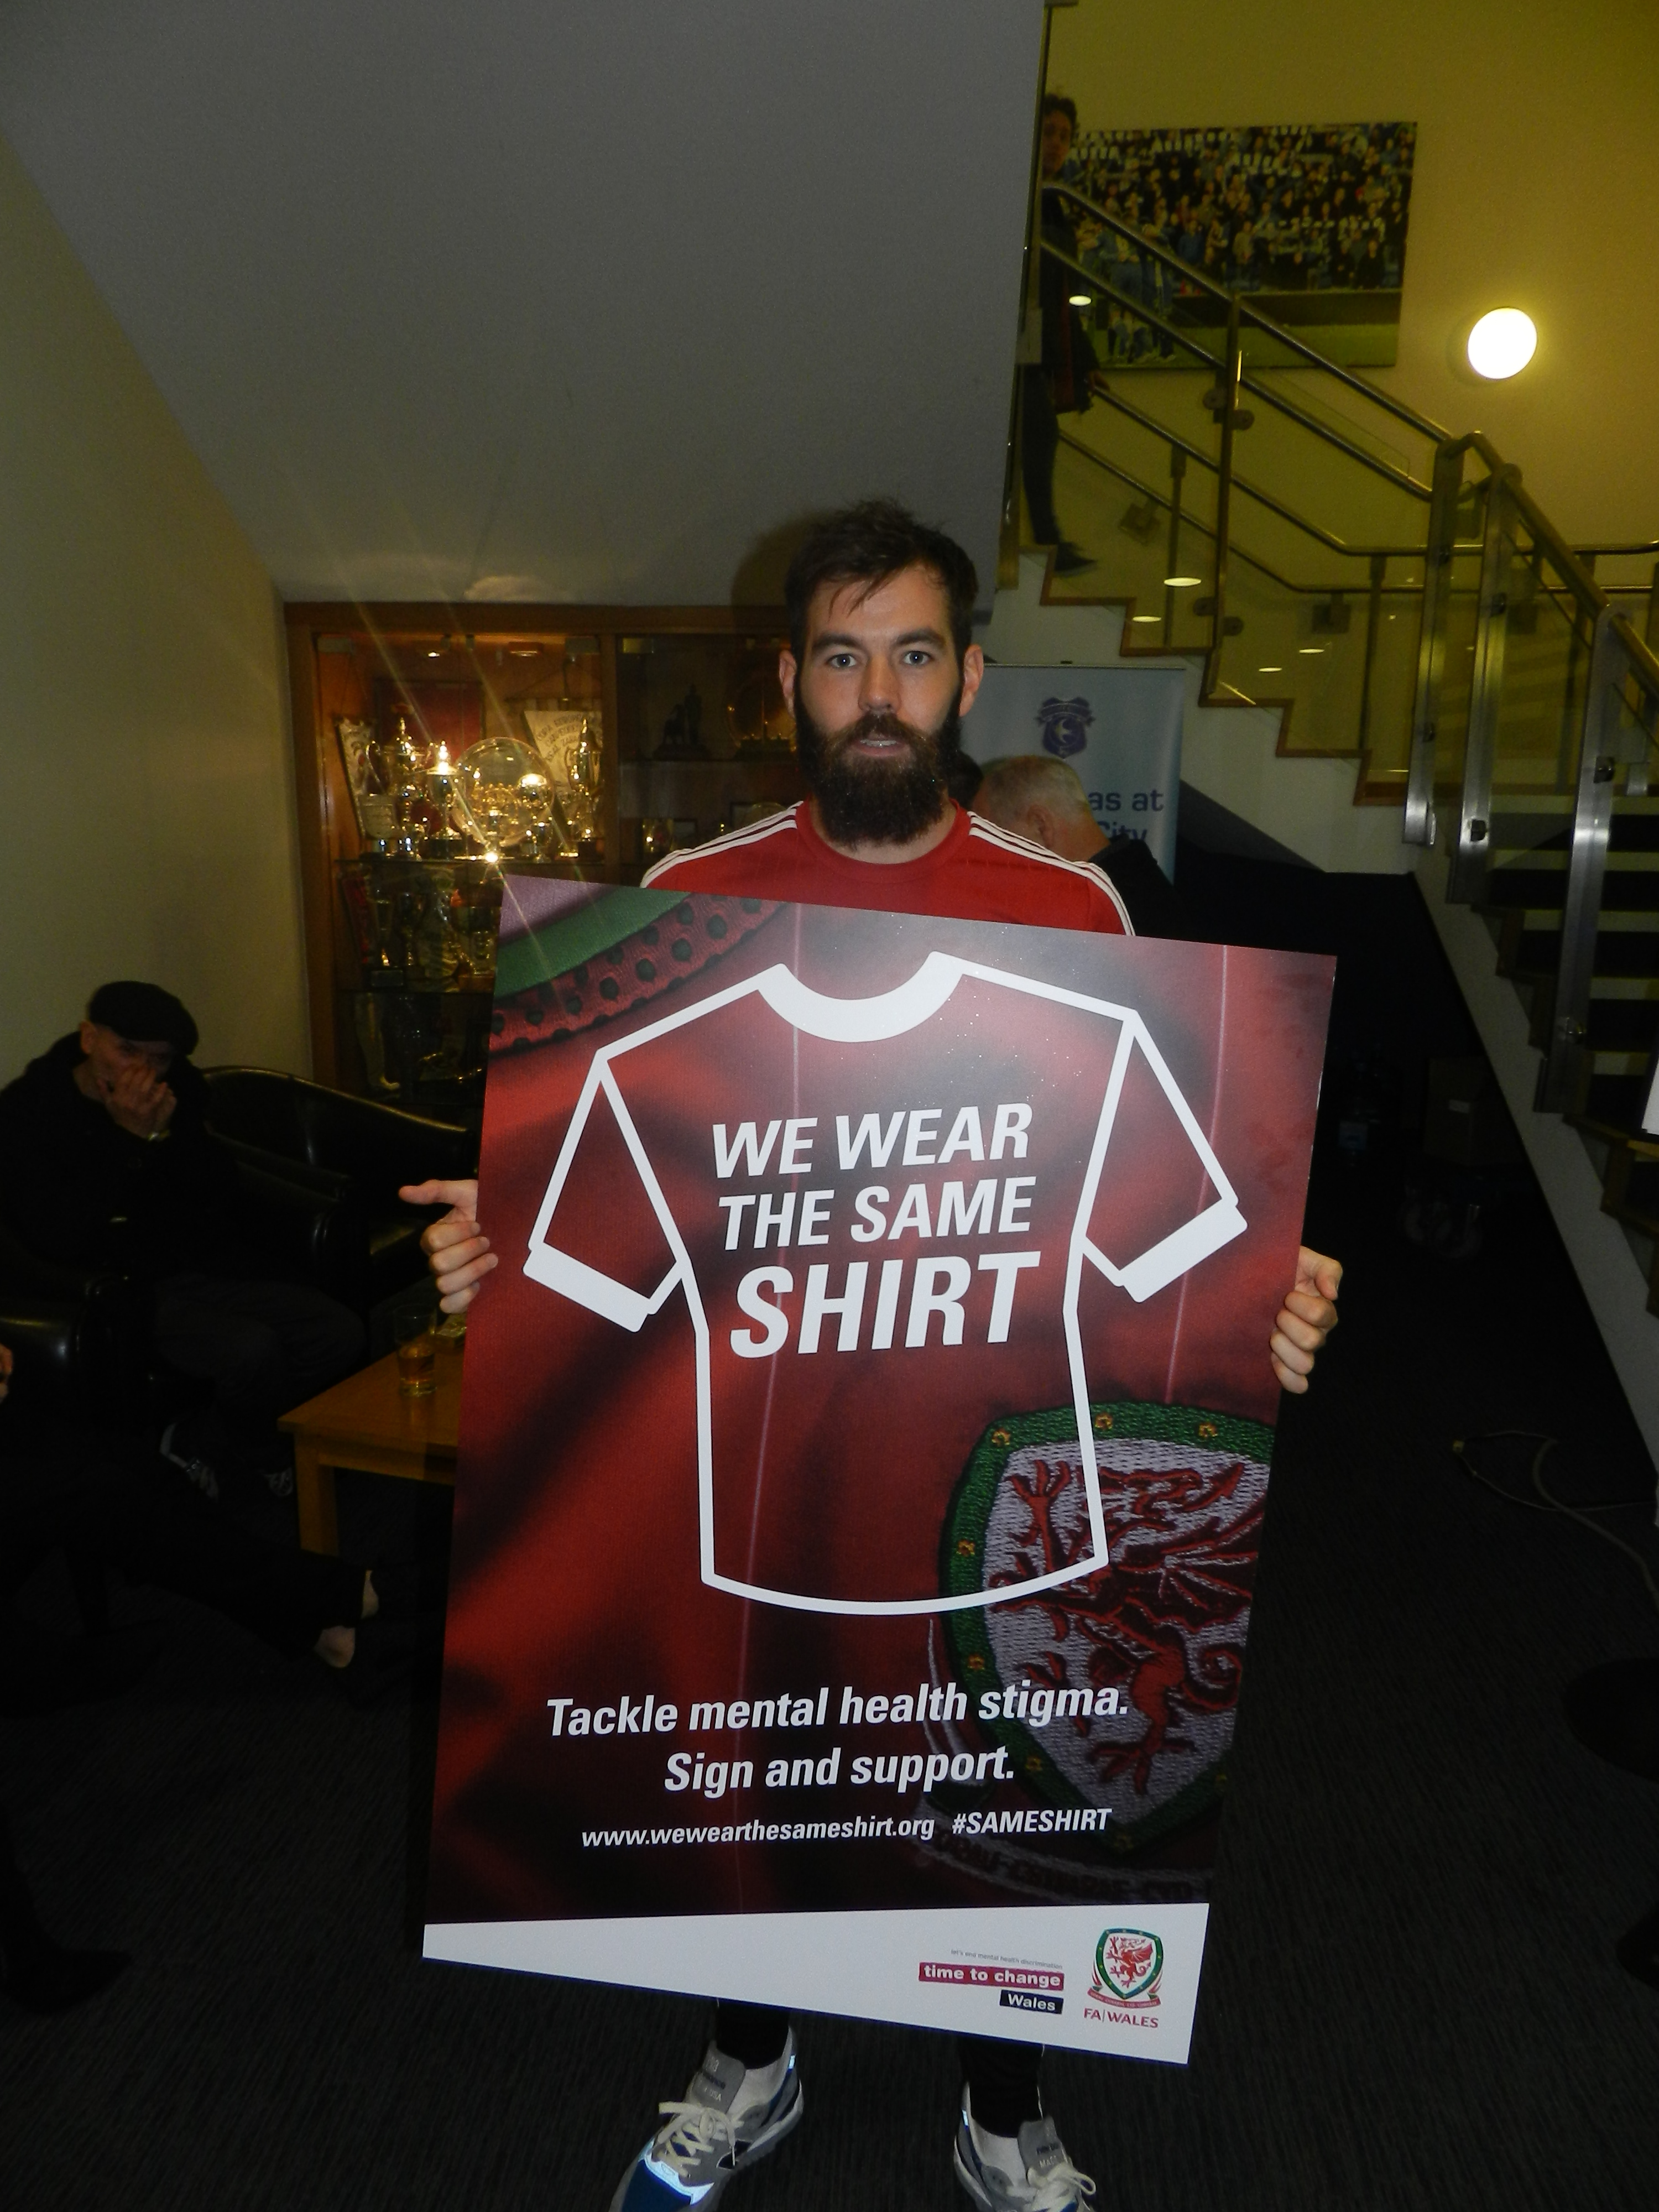 WALES TEAM WEARS THE SAME SHIRT IN TACKLING MENTAL HEALTH STIGMA